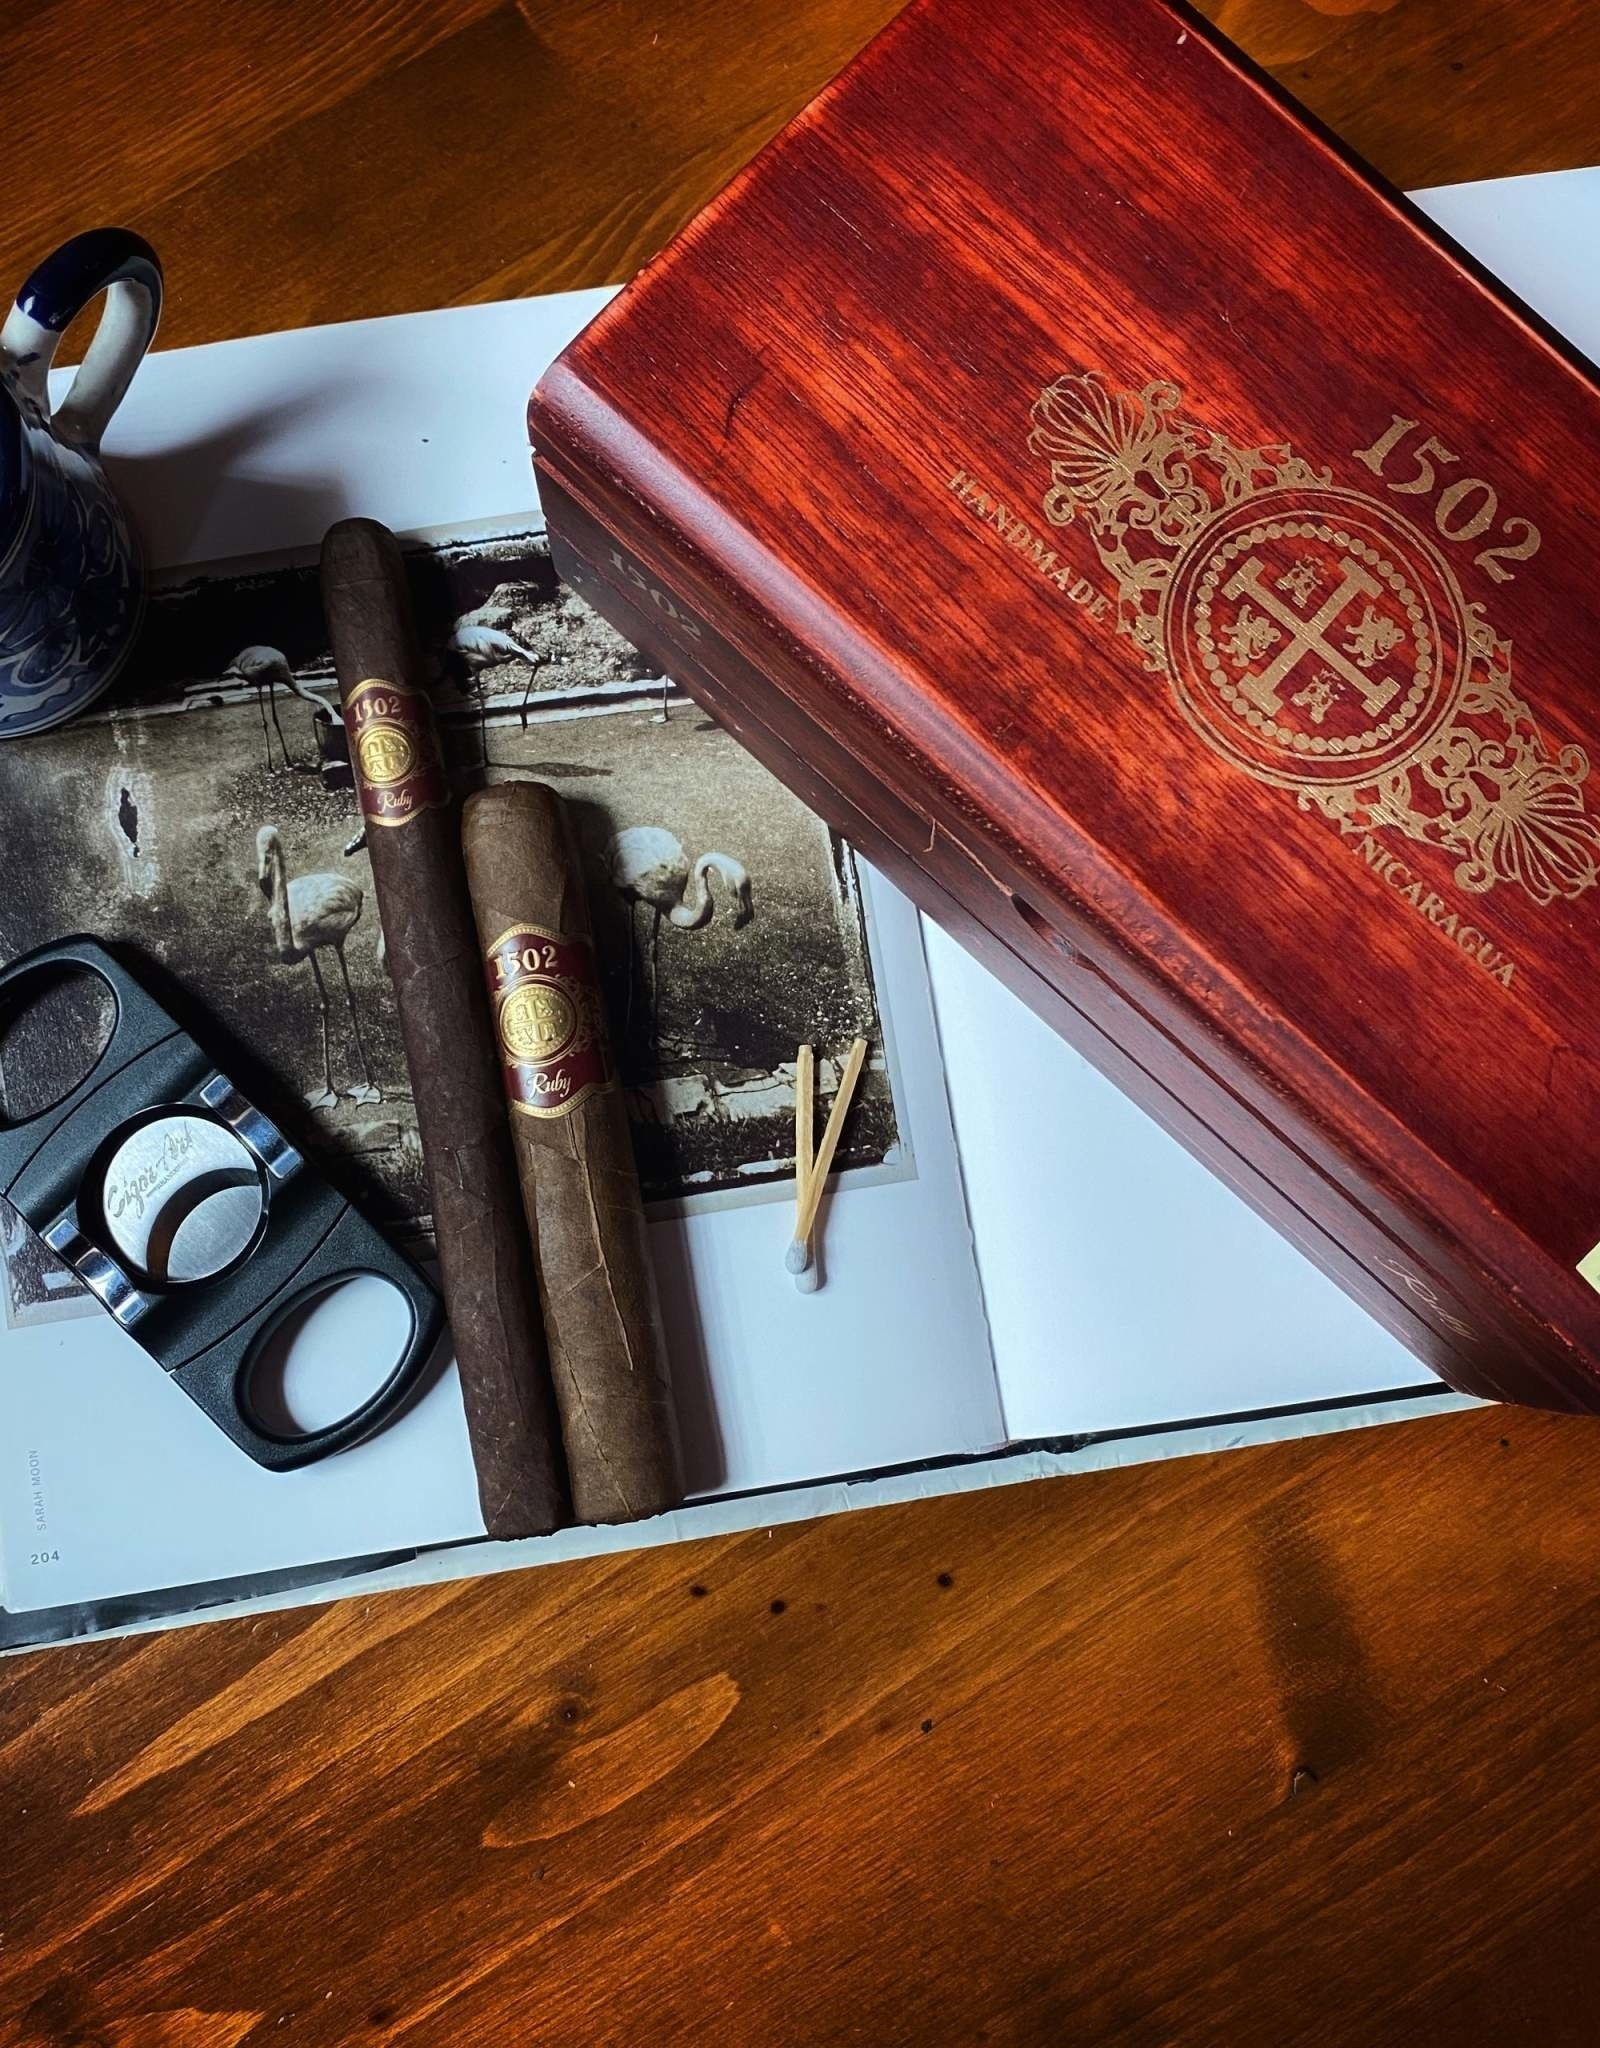 1502 Cigars 1502 Ruby Robusto